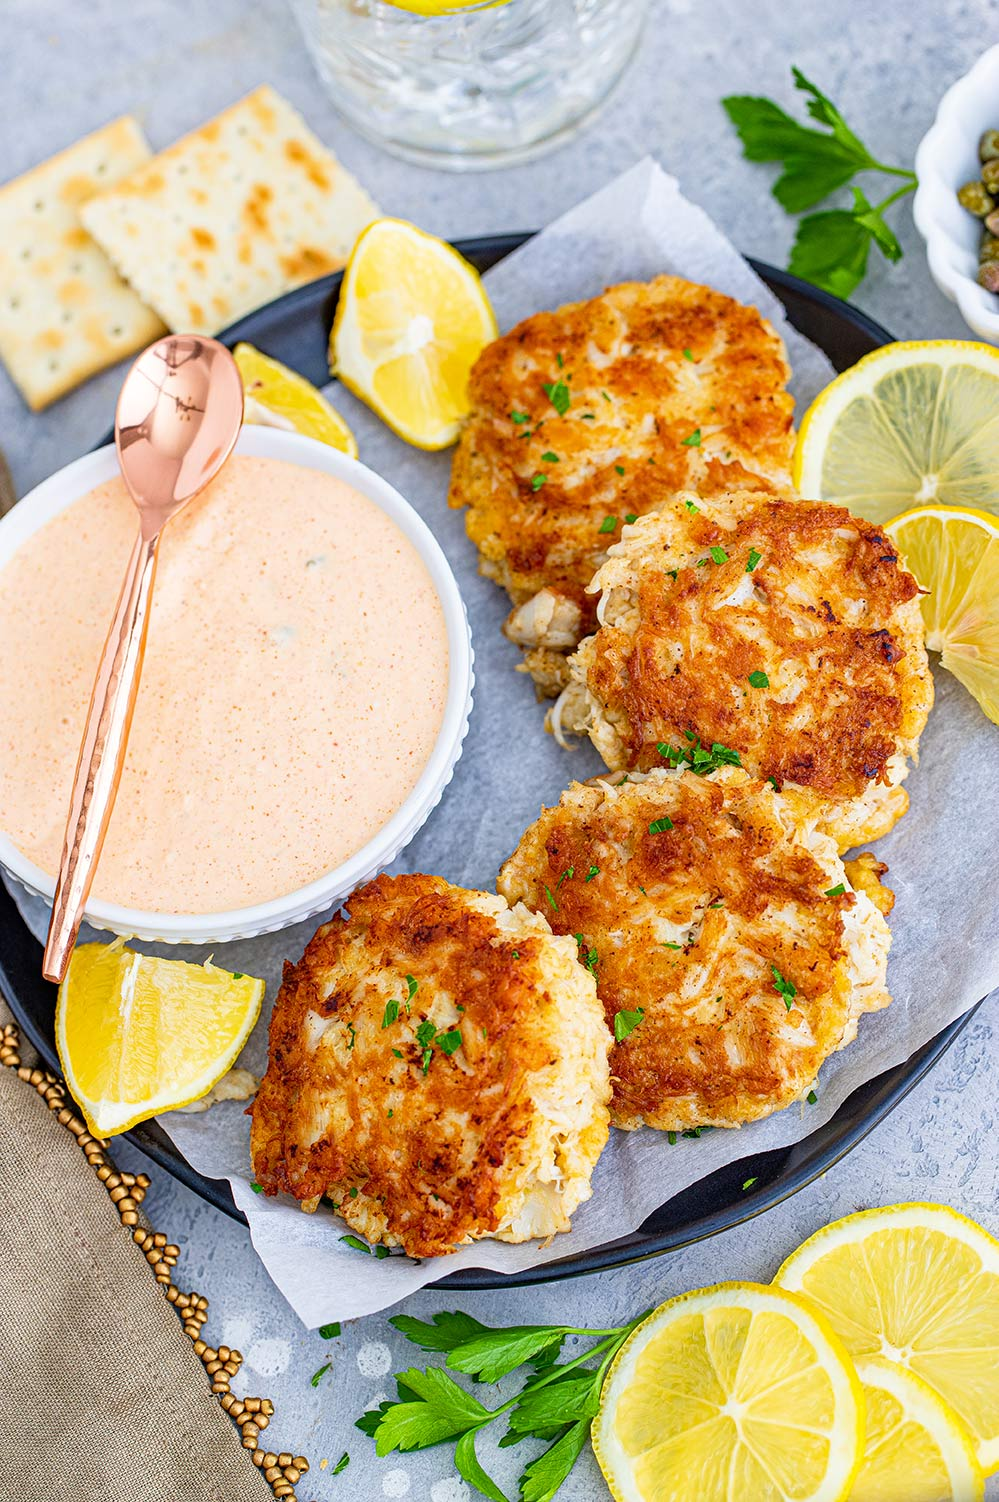 four crab cakes on a plate with a side of remoulade sauce and lemon wedges.